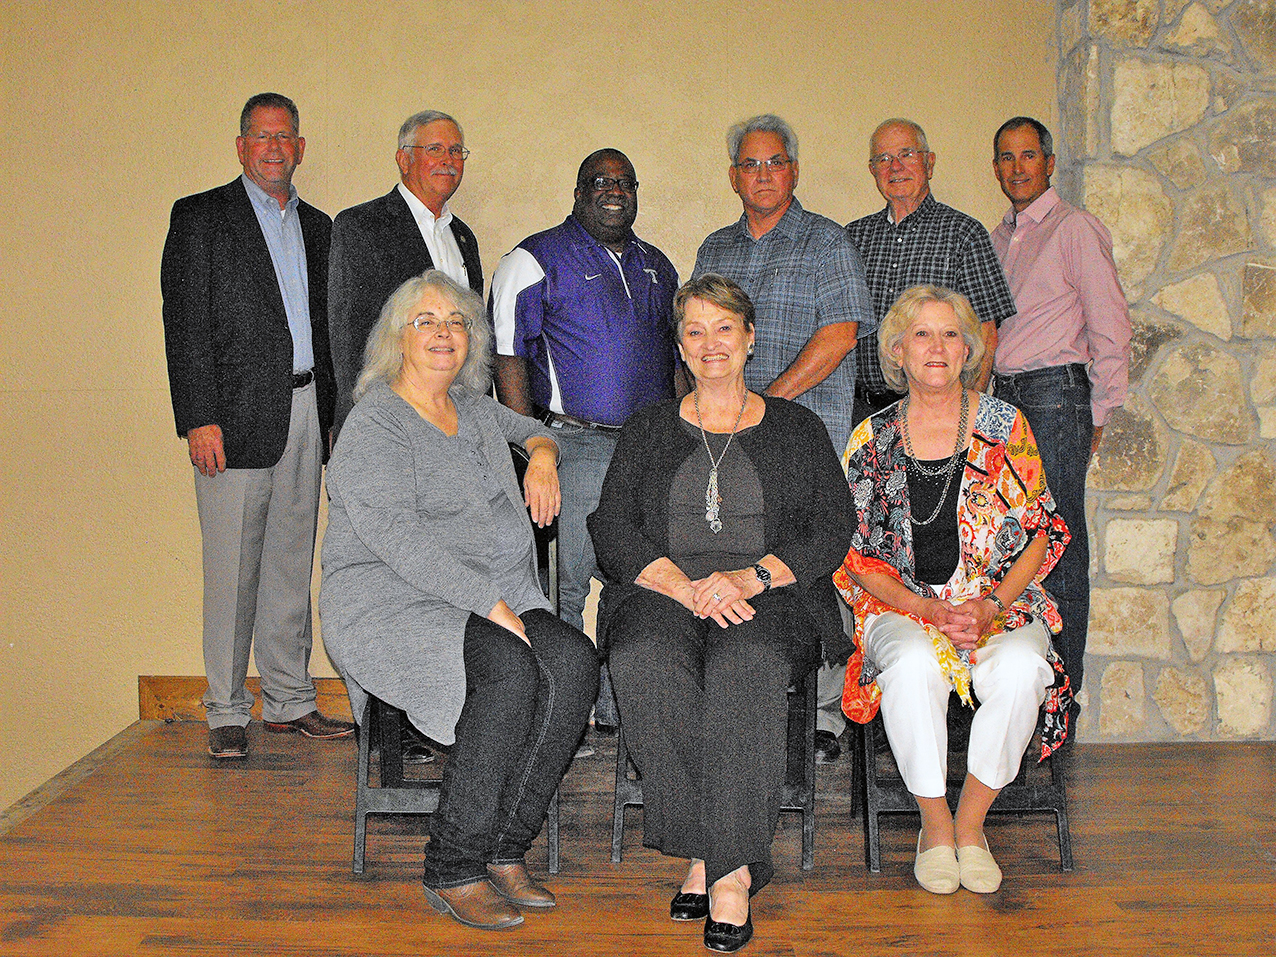 Stafford Retirement Stafford Retirement Cindy with past City Council Members